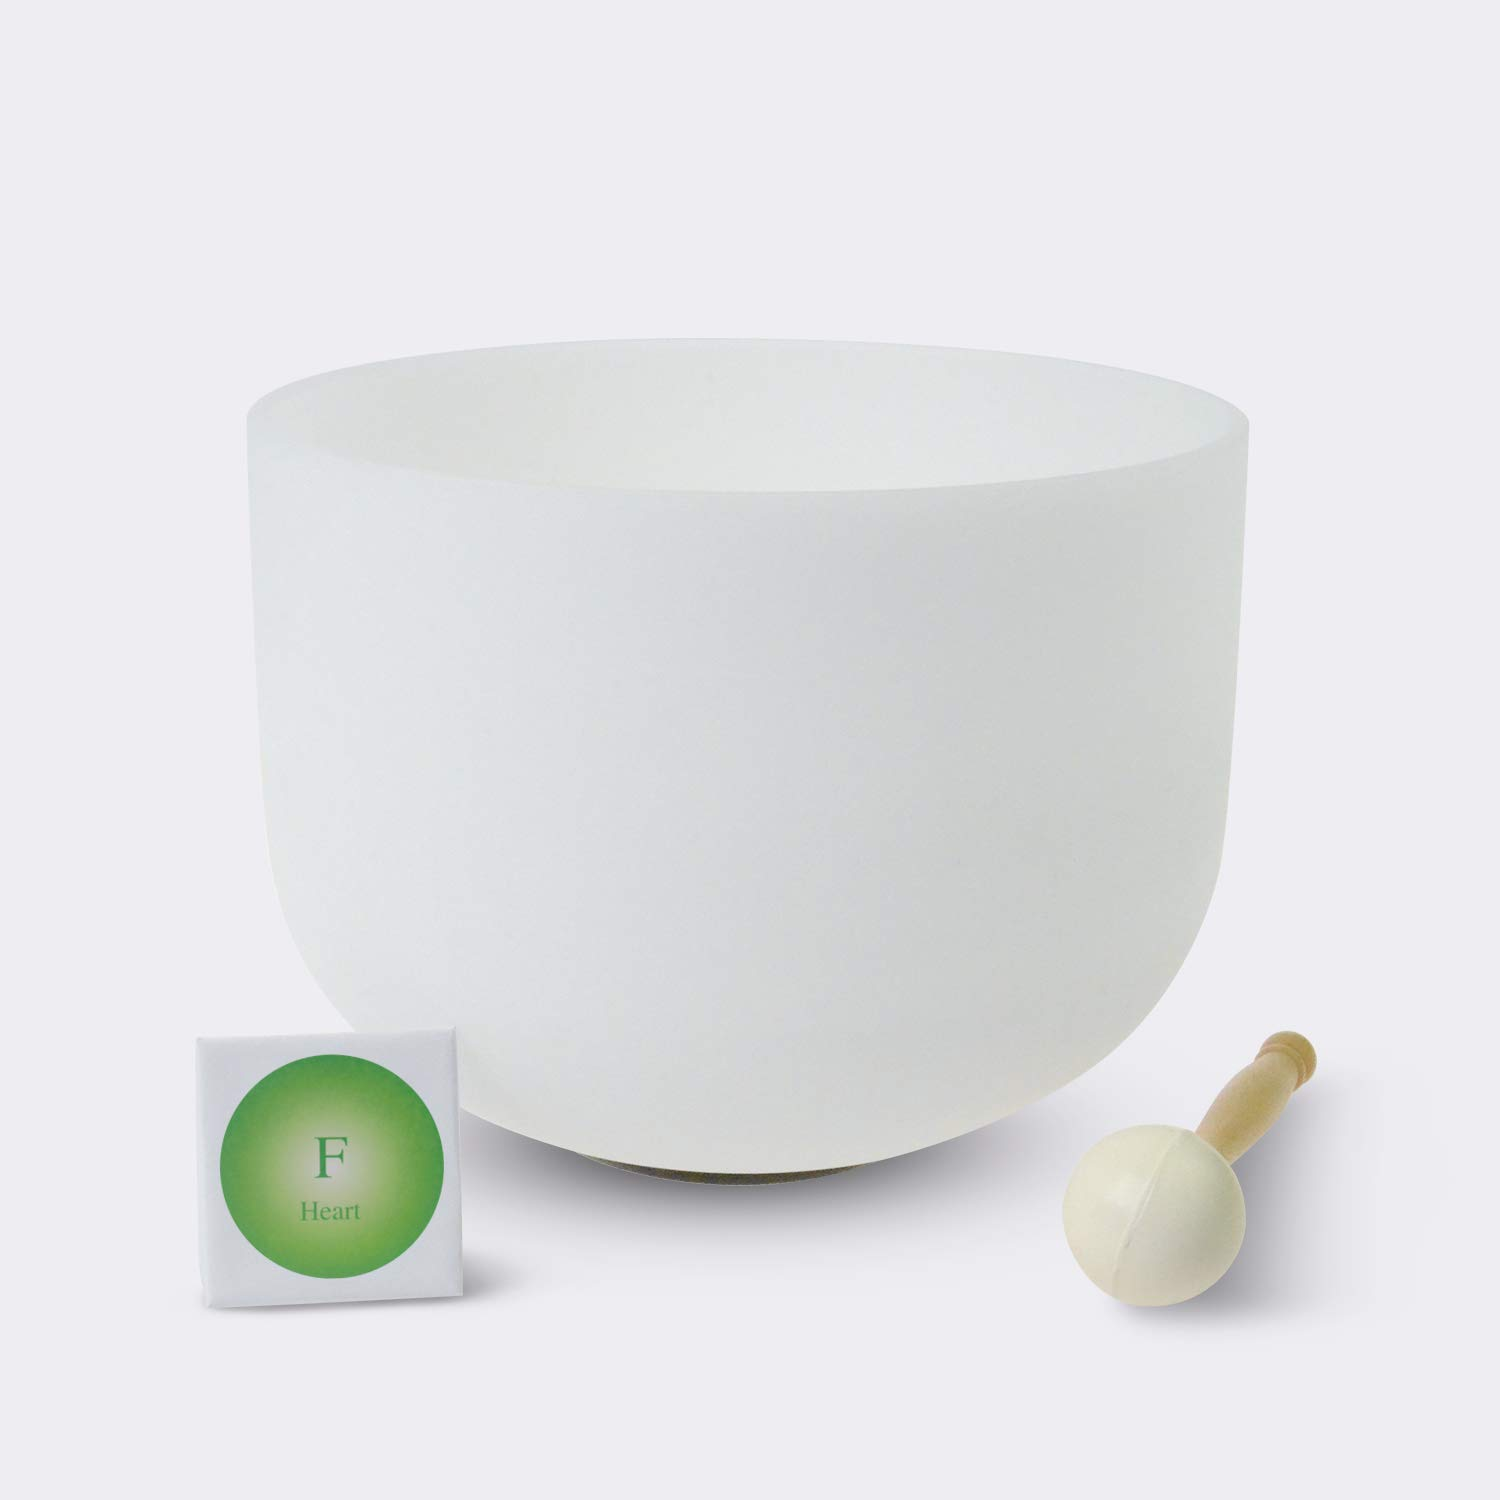 TOPFUND Singing Bowls Perfect Pitch F Note Crystal Singing Bowl Heart Chakra 12 inch (O-Ring and rubber mallet included)